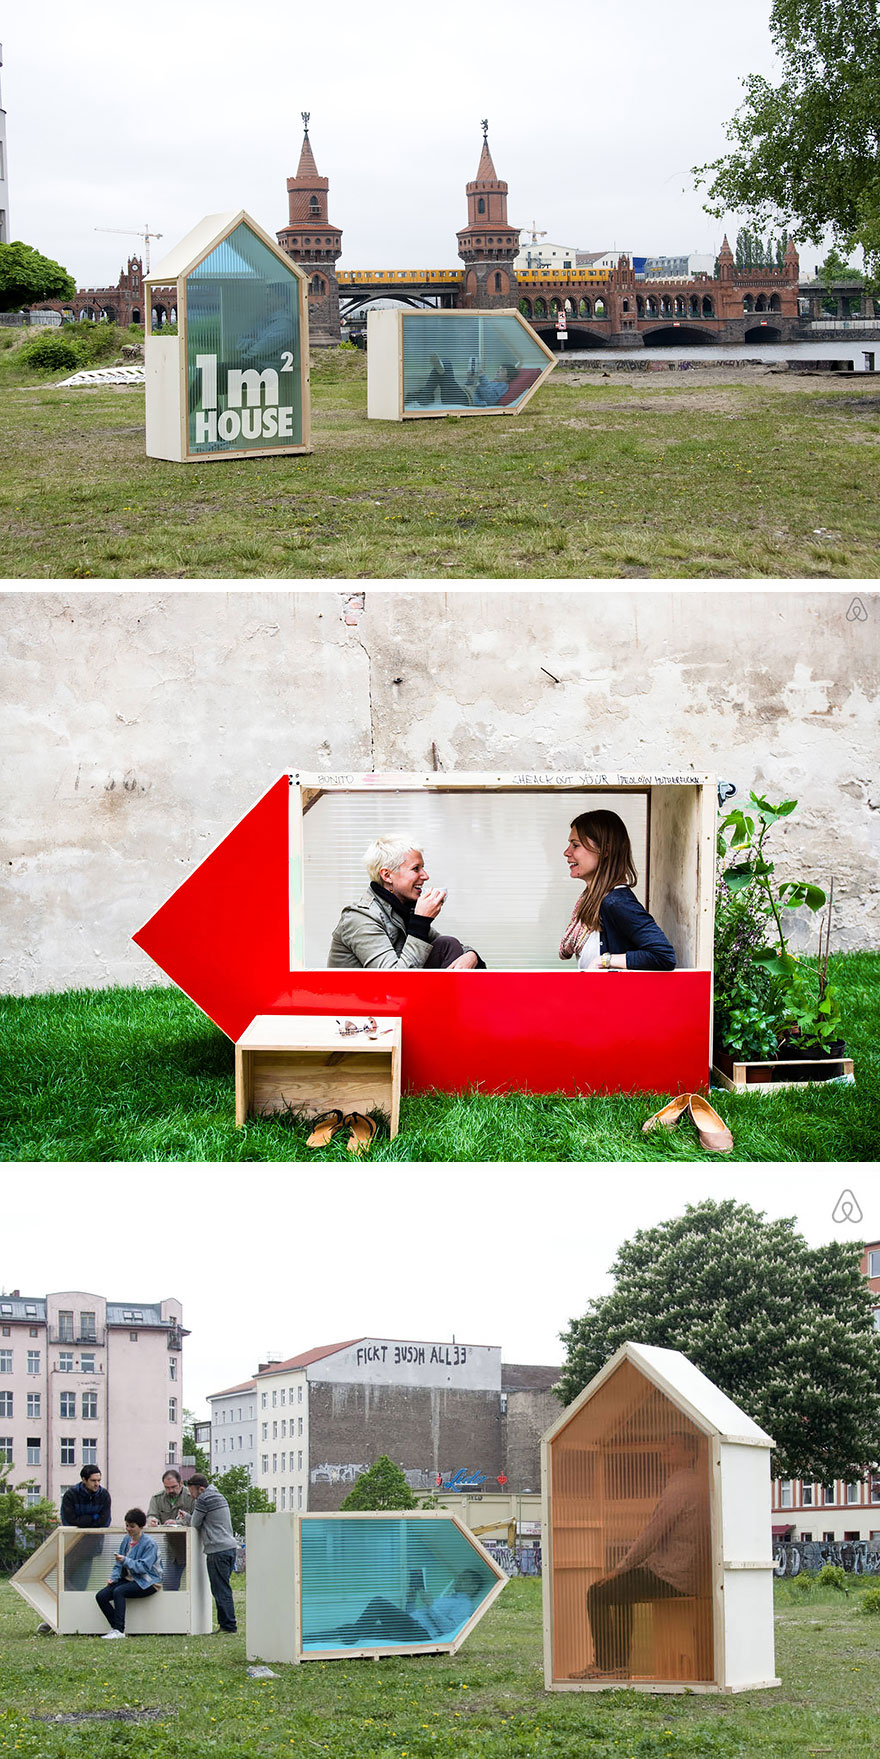 tiny-homes-perfect-for-little-space-1sq-m-house-germany